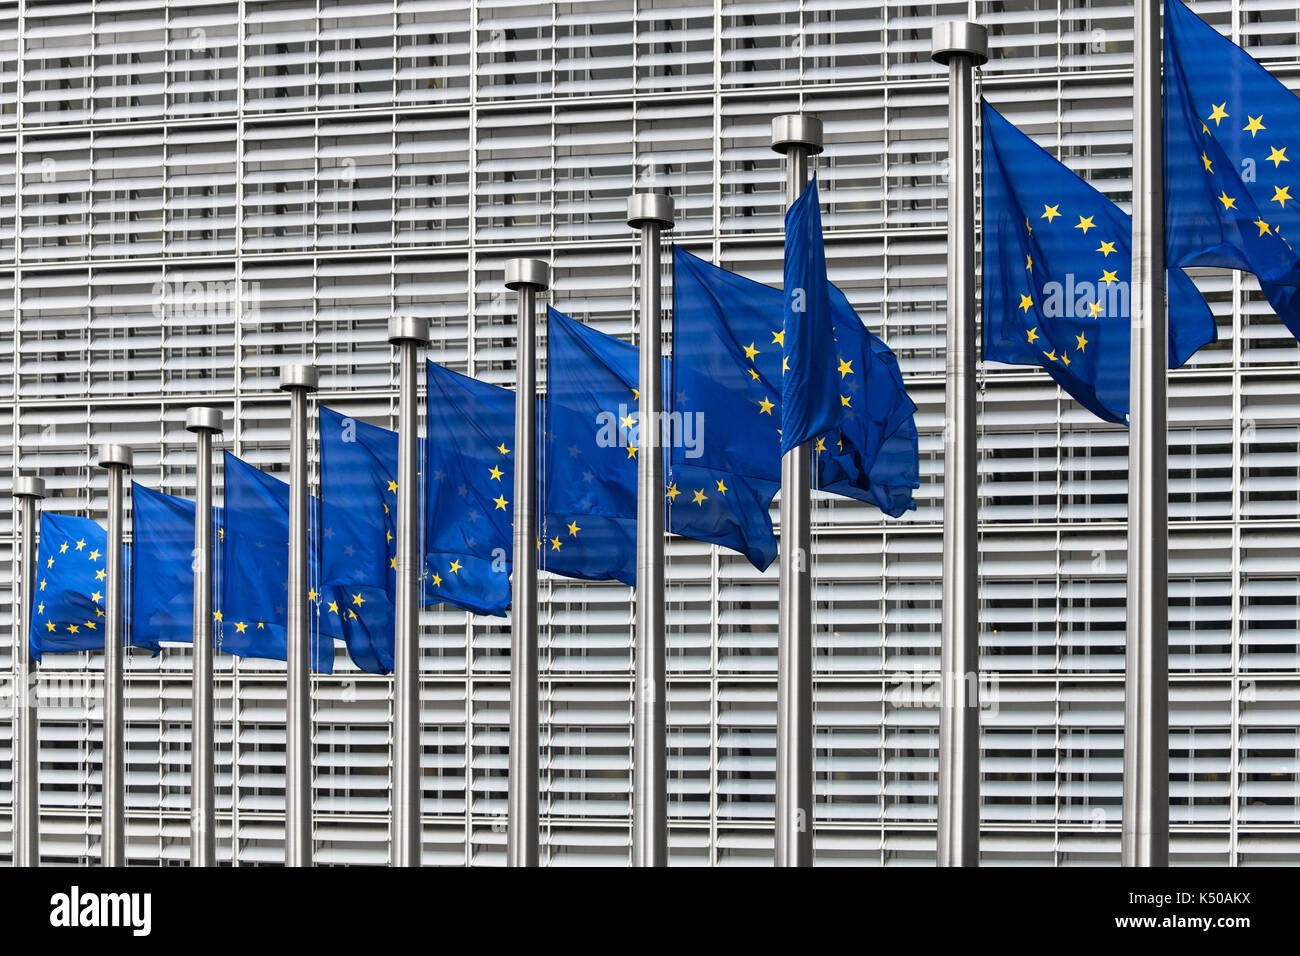 European flags in front of the Berlaymont building, headquarters of the European Commission, Brussels, Belgium. - Stock Image